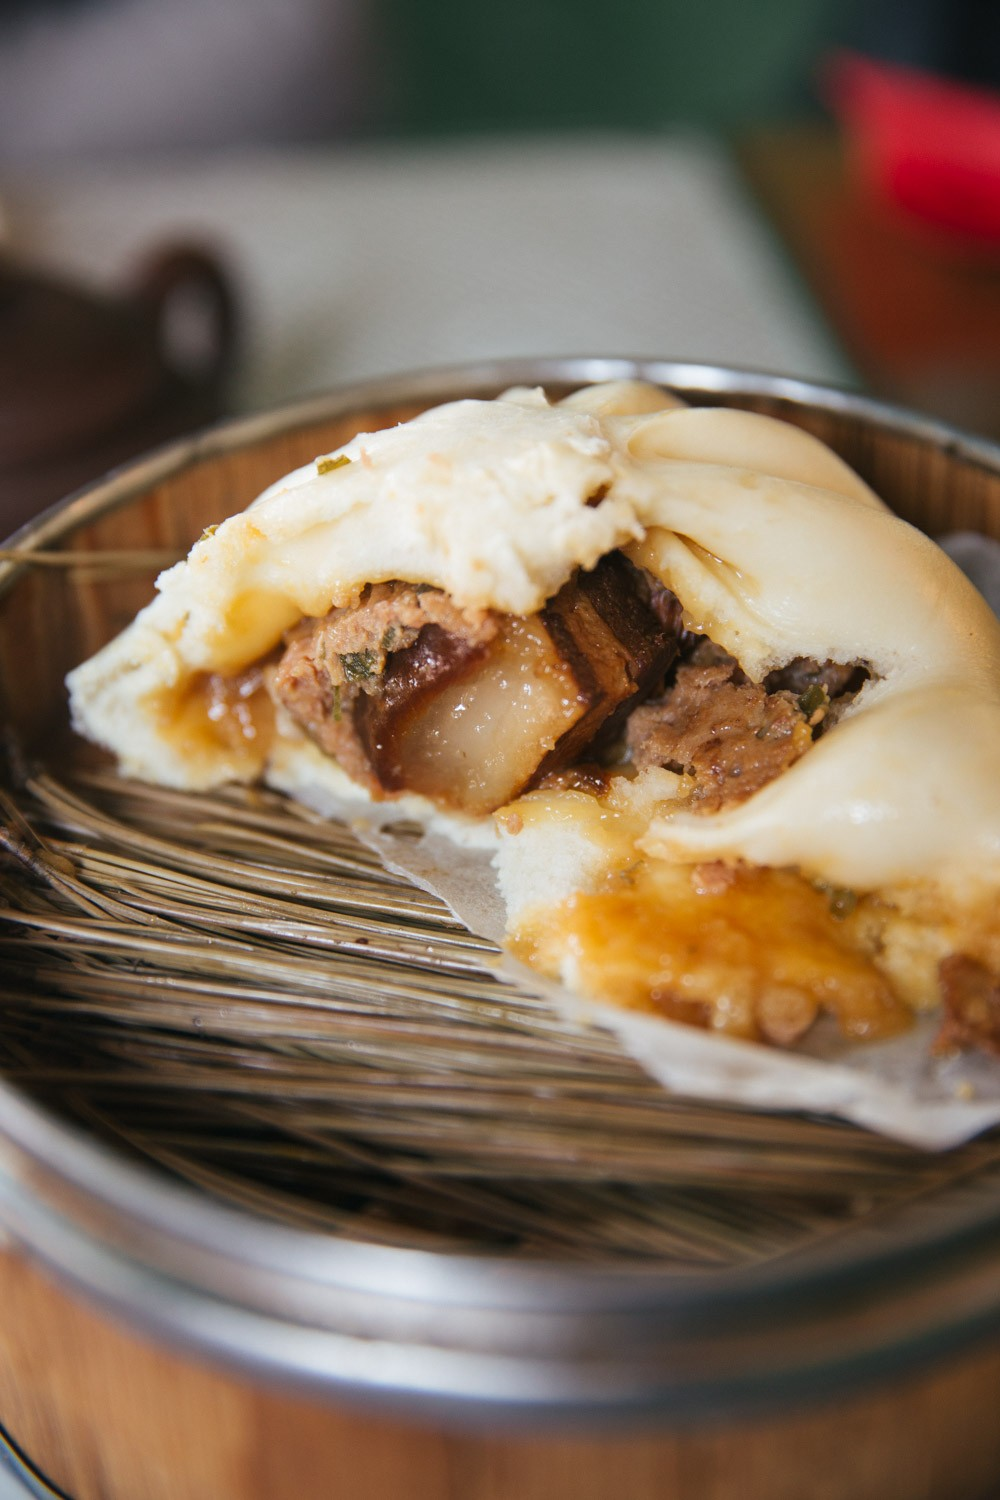 Slow cooked pork bun